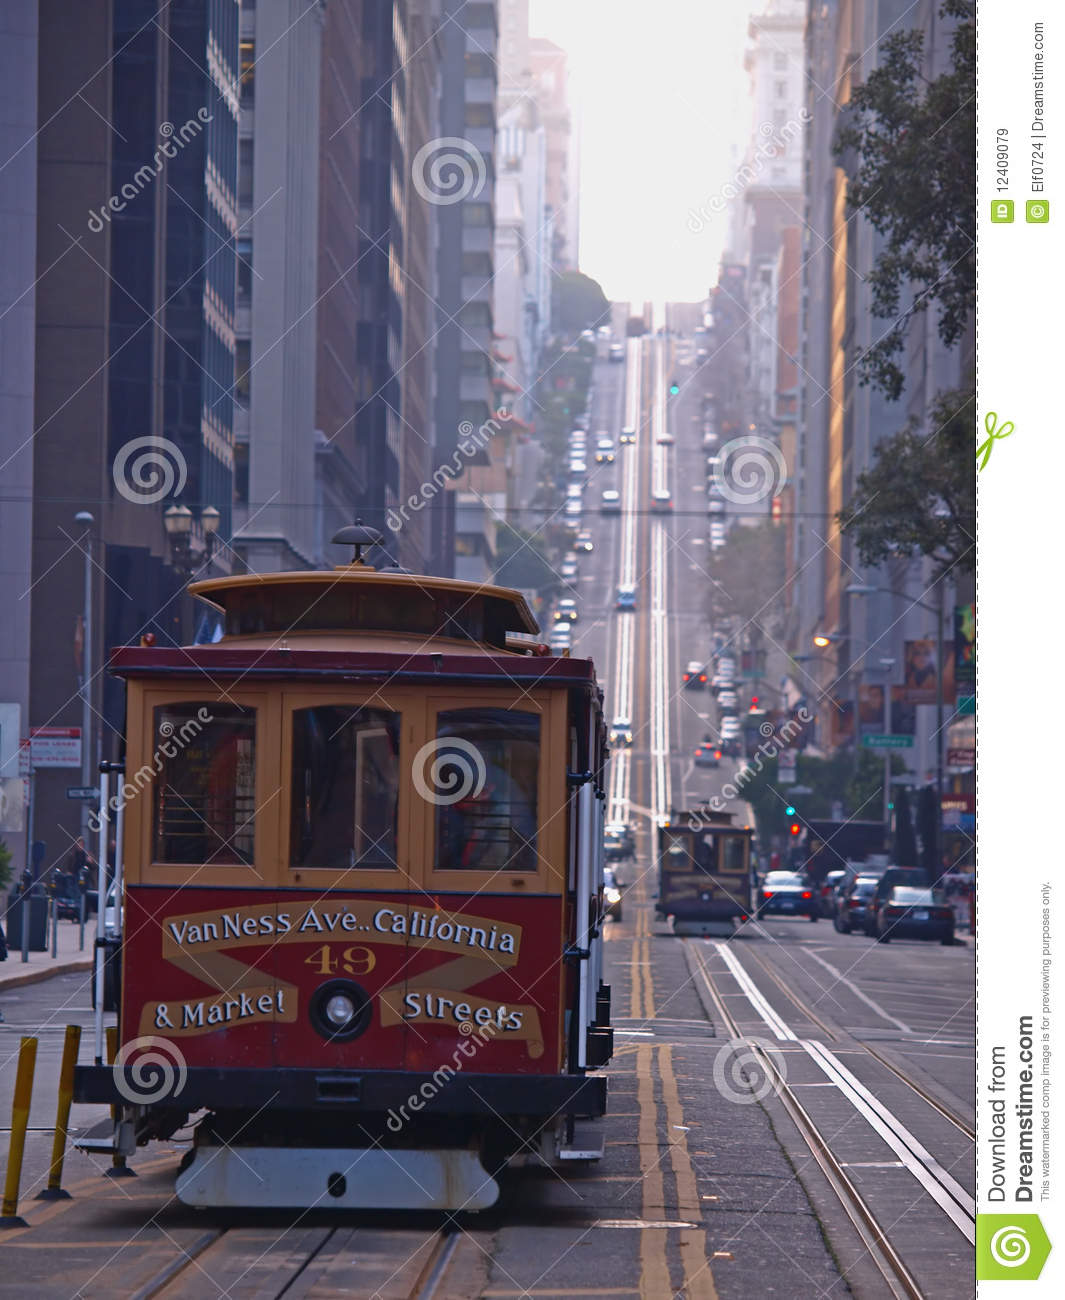 Cable Car of San Francisco